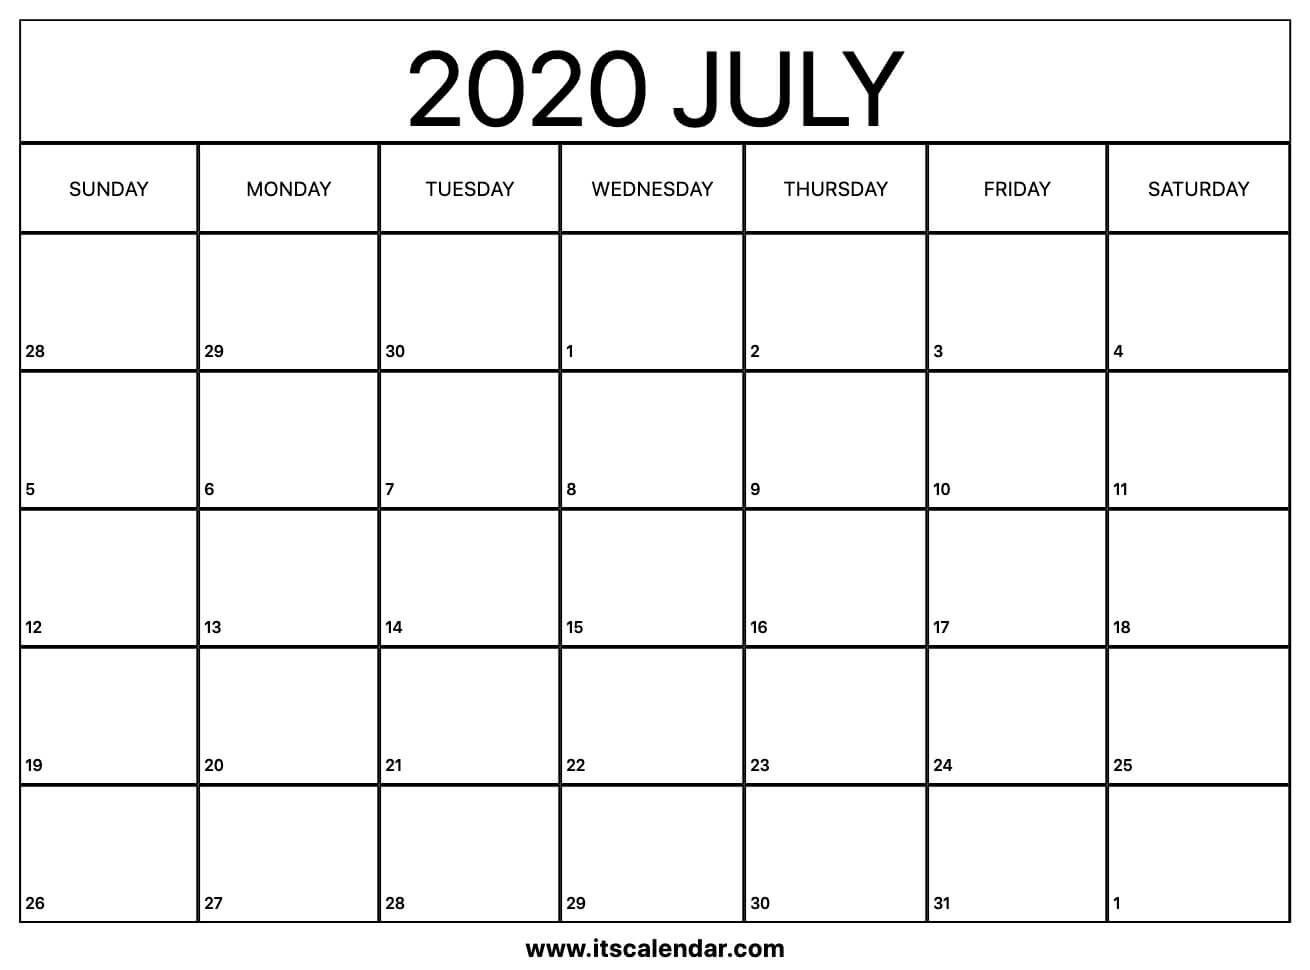 Free Printable July 2020 Calendar Calendars To Fill In And Print